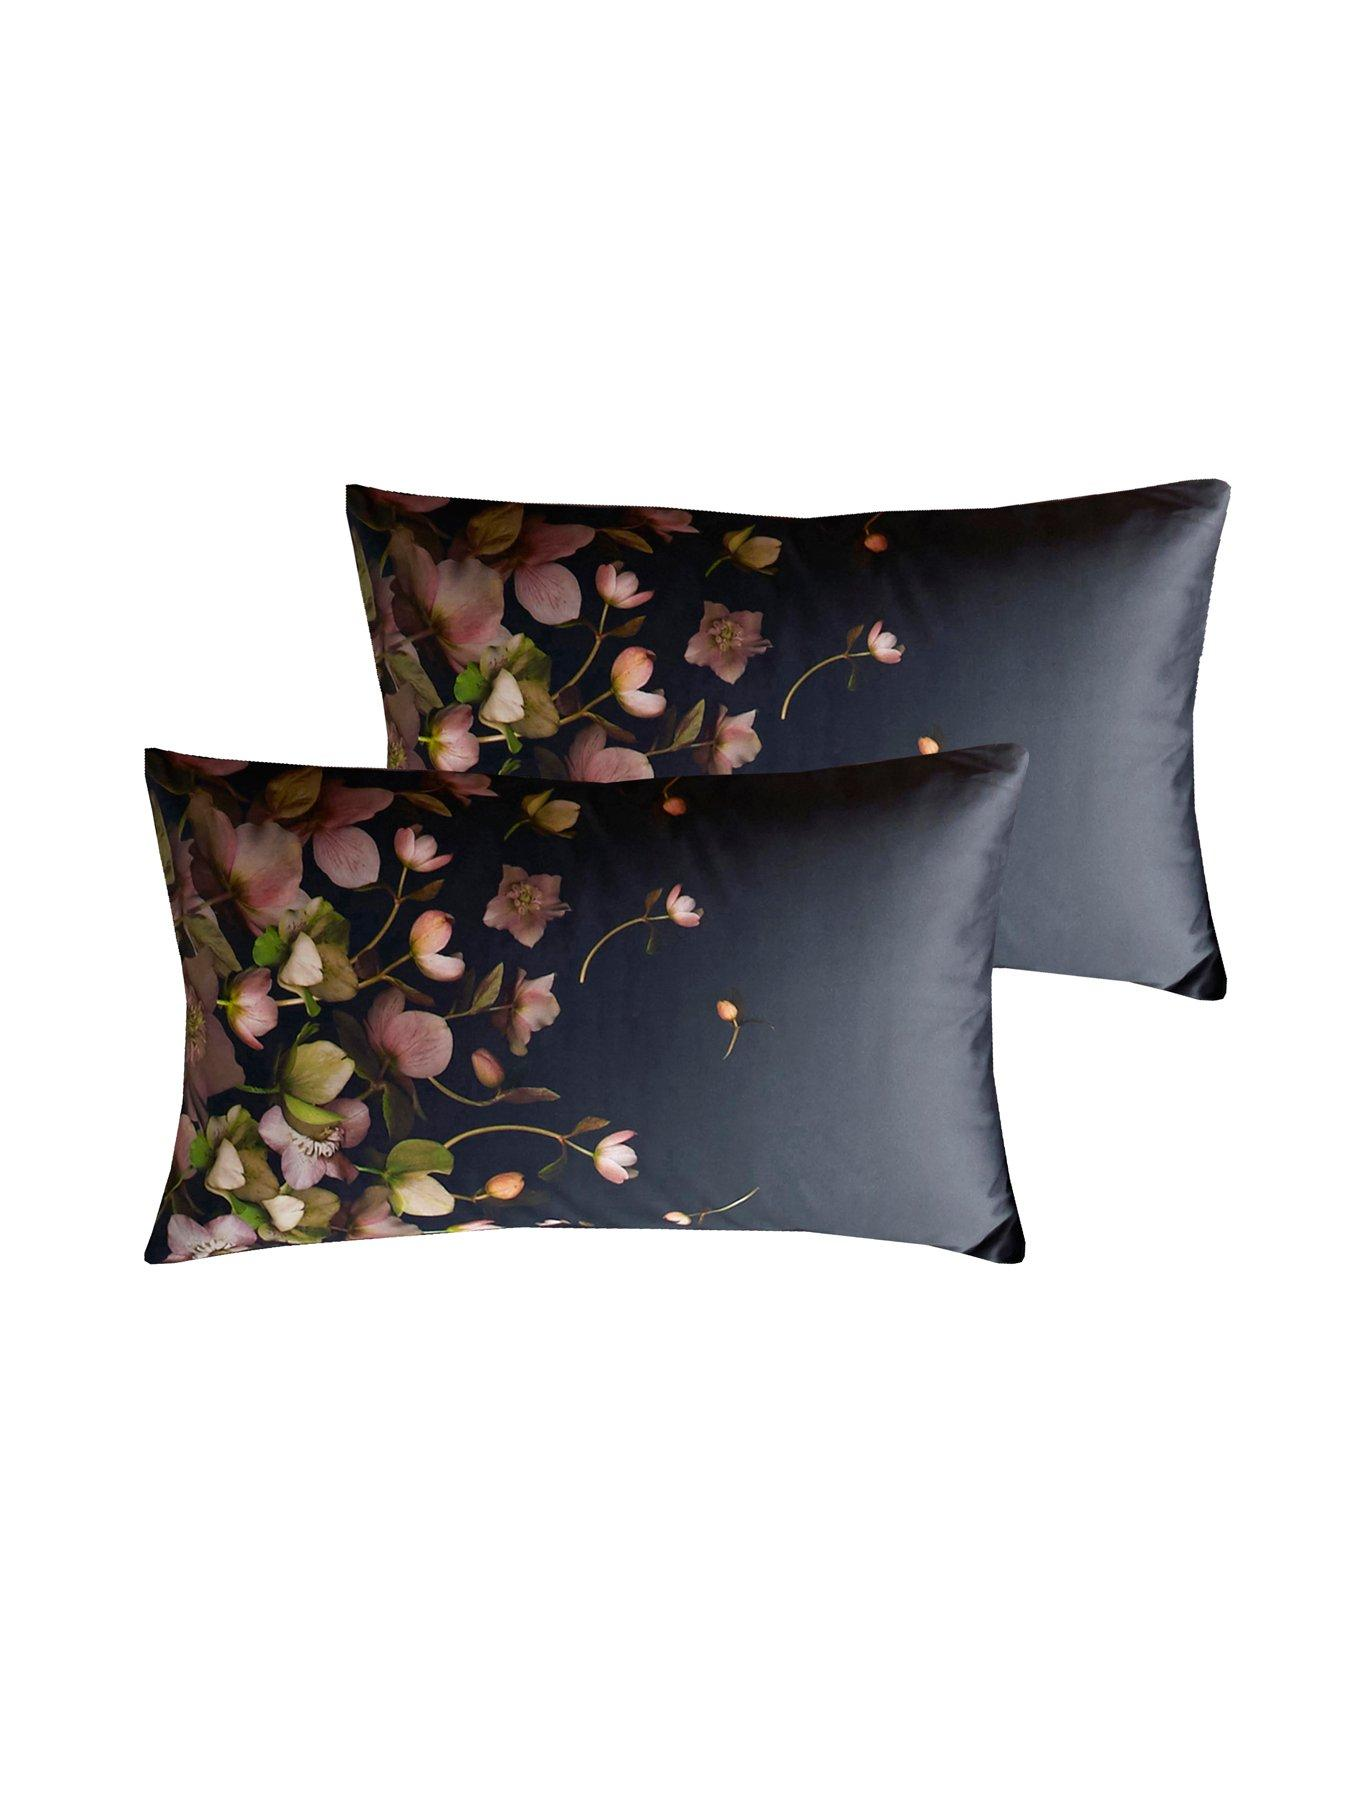 TED BAKER PAIR of new Pillow Cases Pure